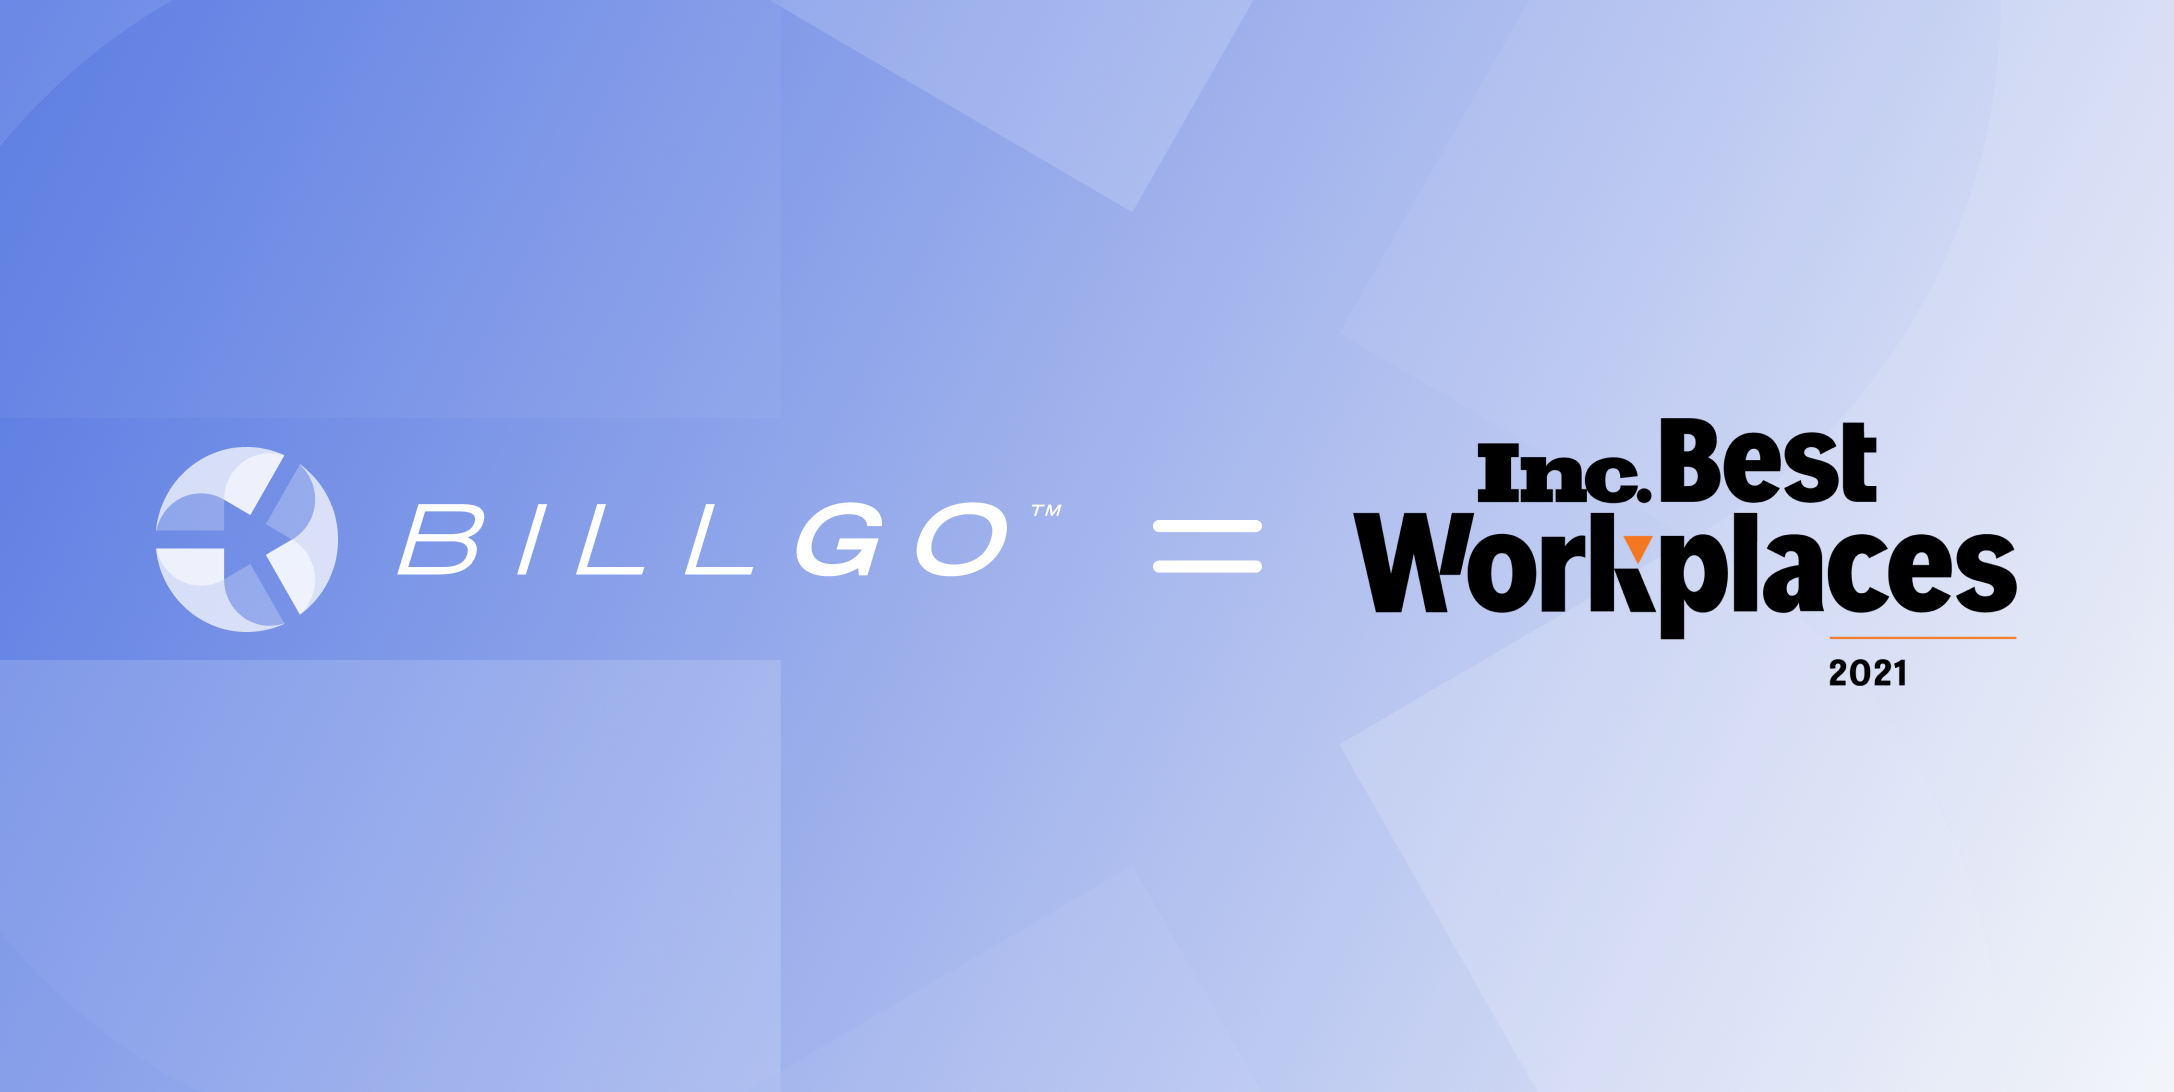 BillGO Makes Inc.'s Best Company List for 2021